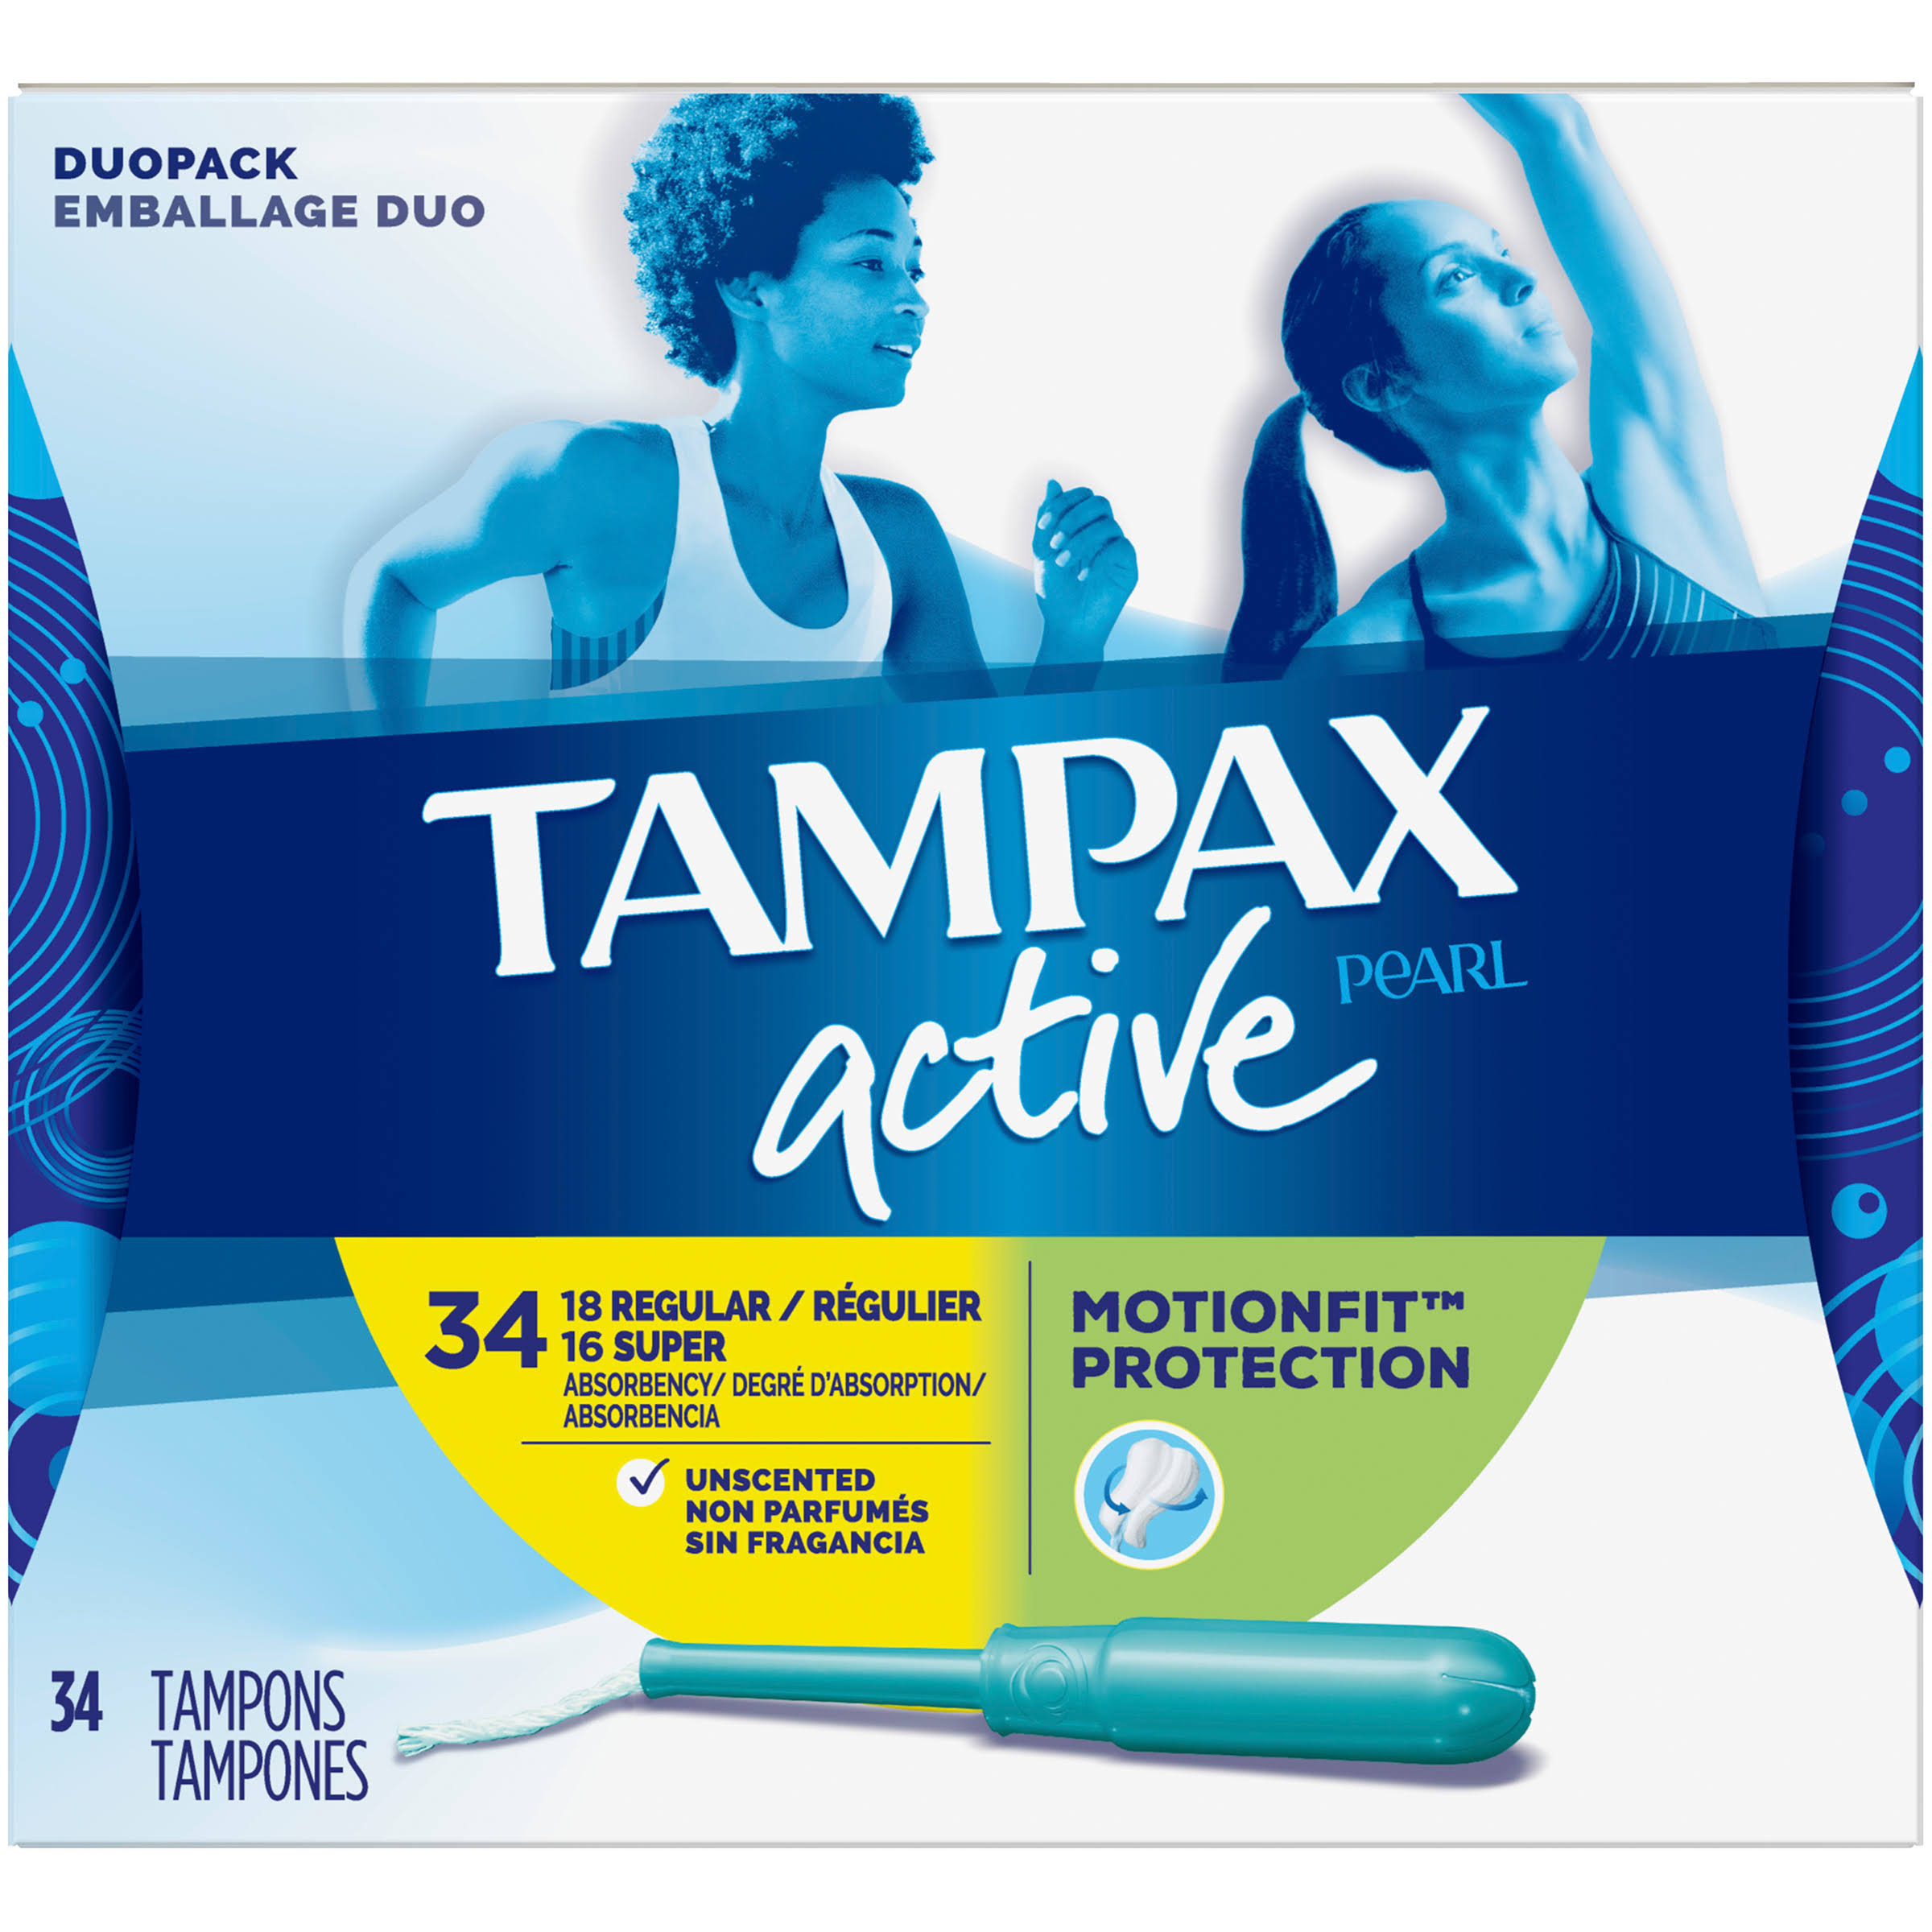 Tampax Pearl Active Duo Plastic Tampons - Unscented, 34ct